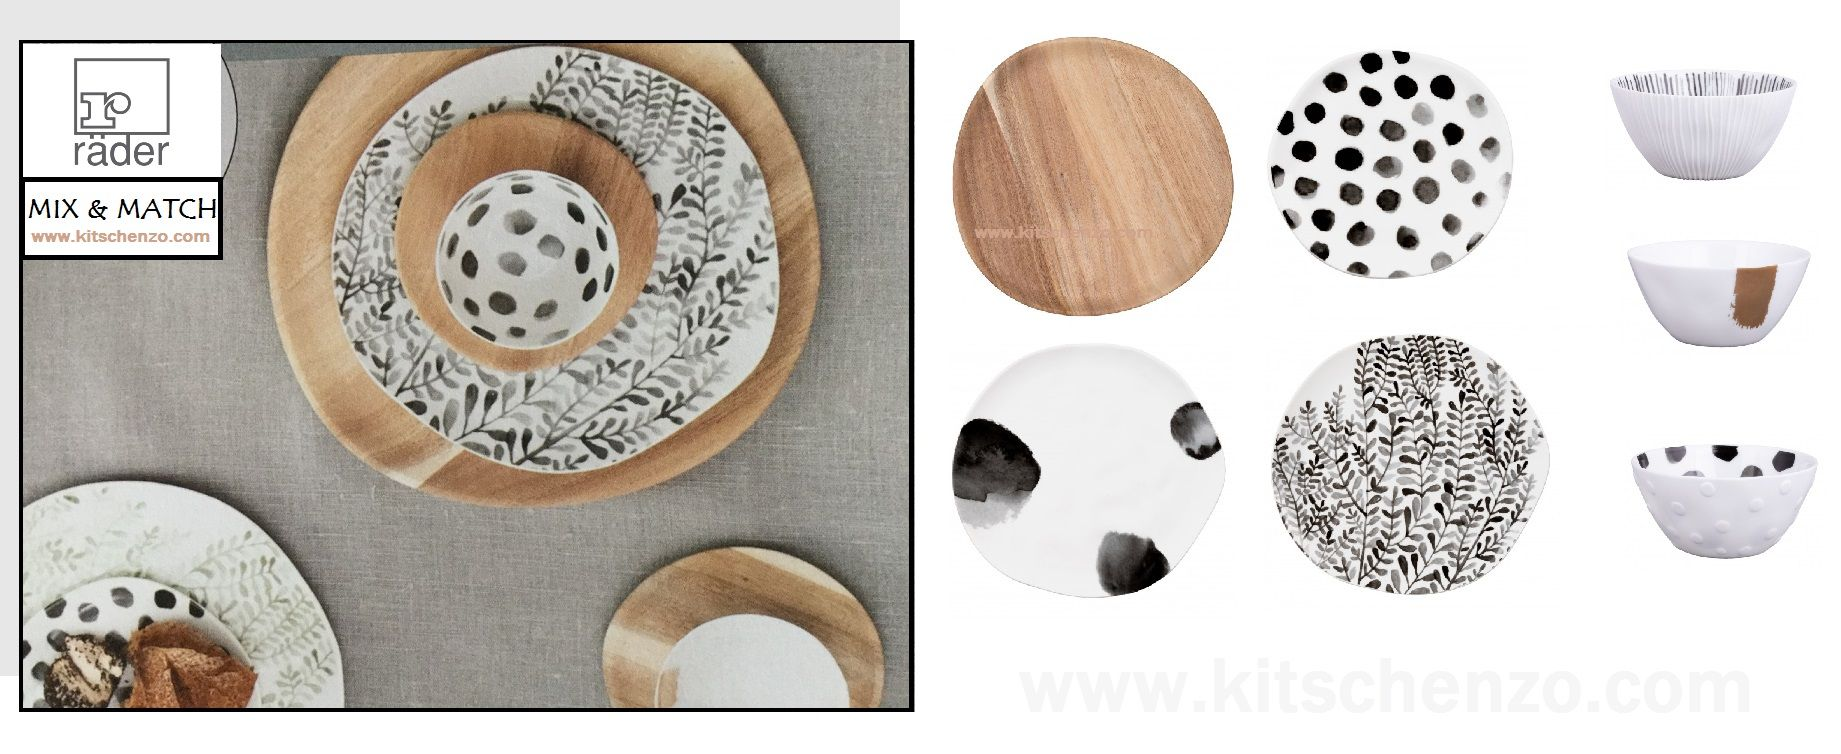 Räder mix & match collectie servies bij kitschenzo